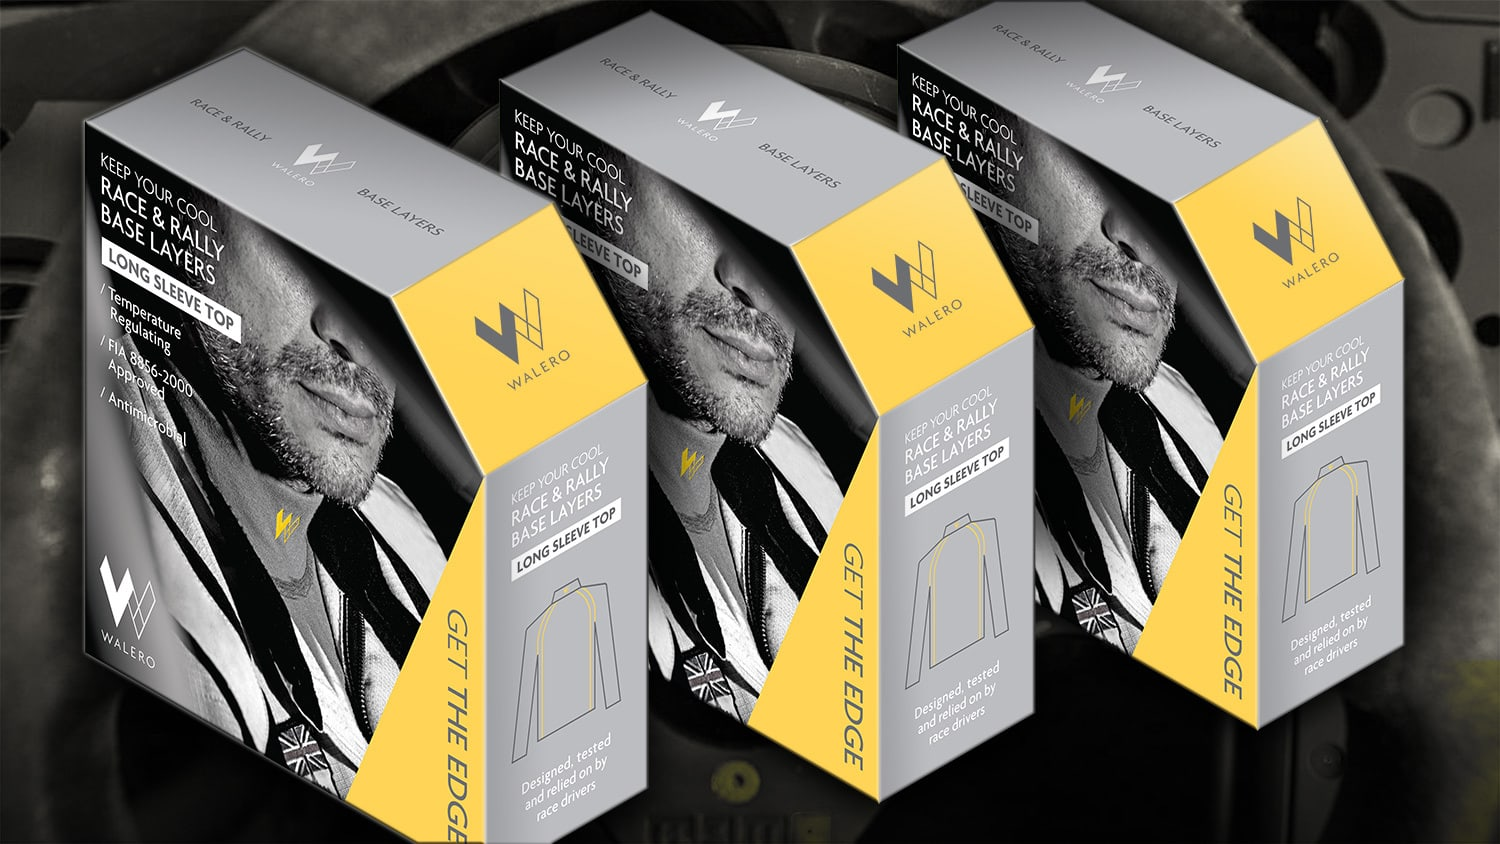 Walero packaging design carton with a full bleed image on front resting with steering wheel background